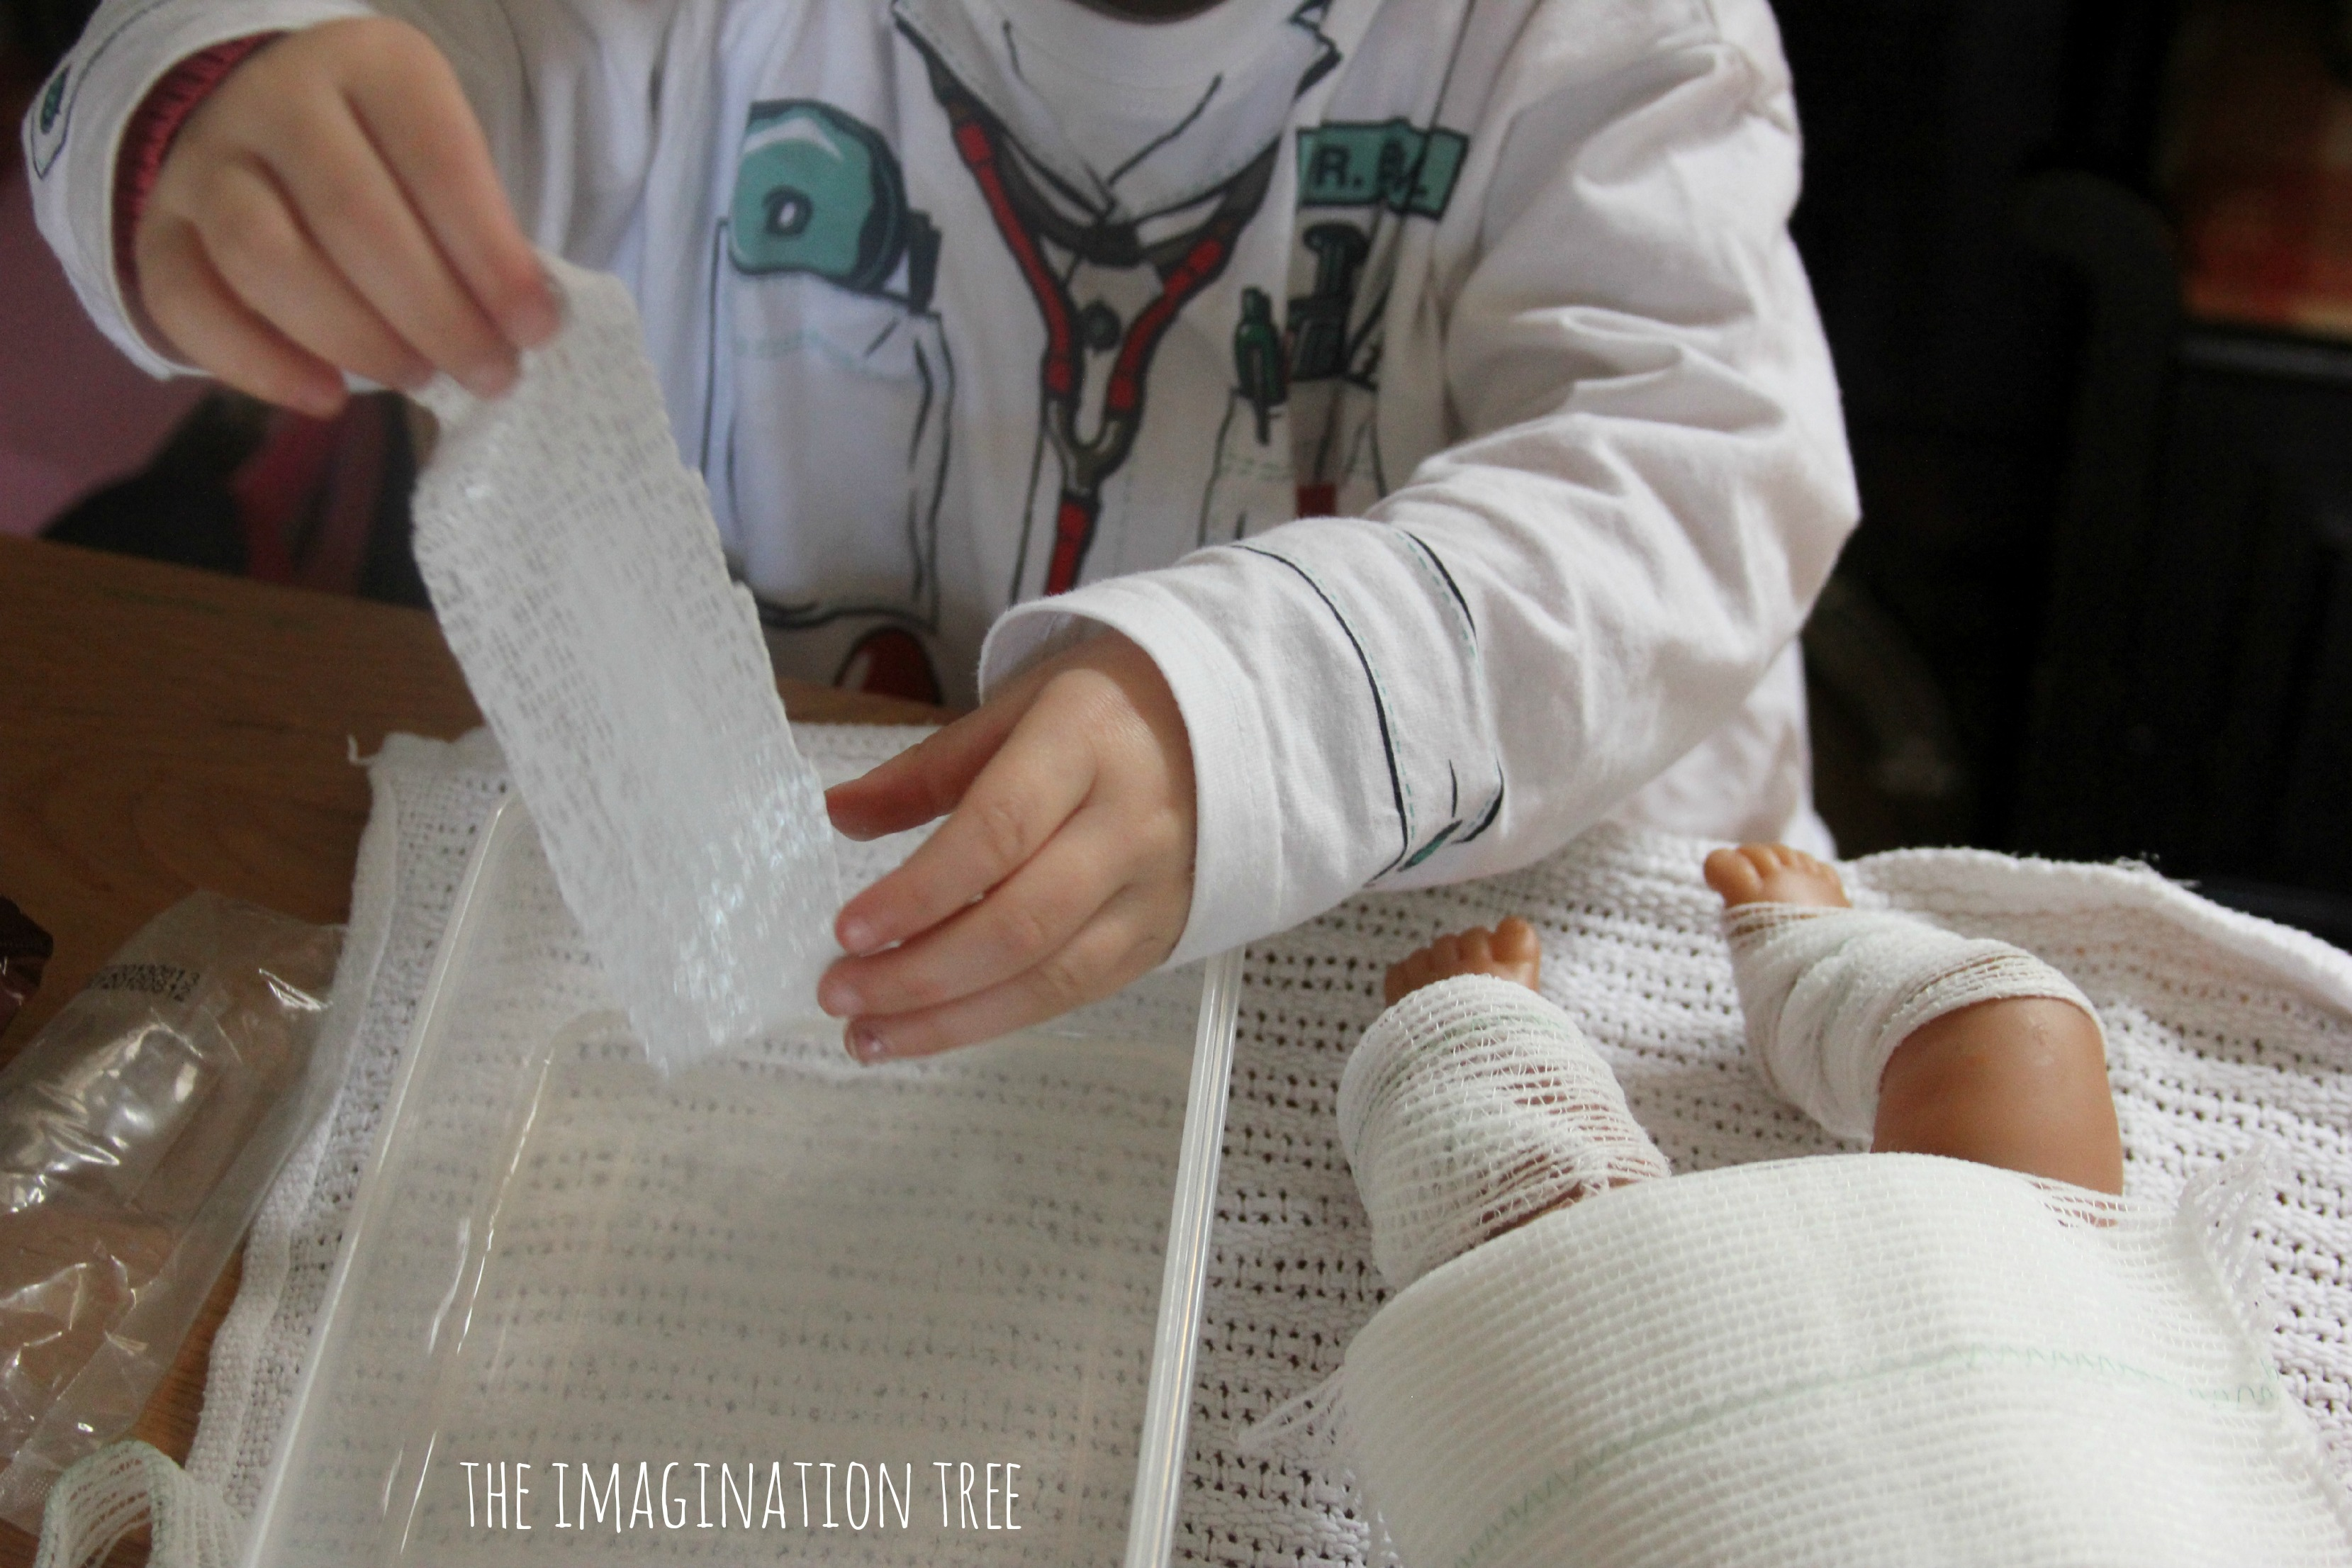 How to make hand casts